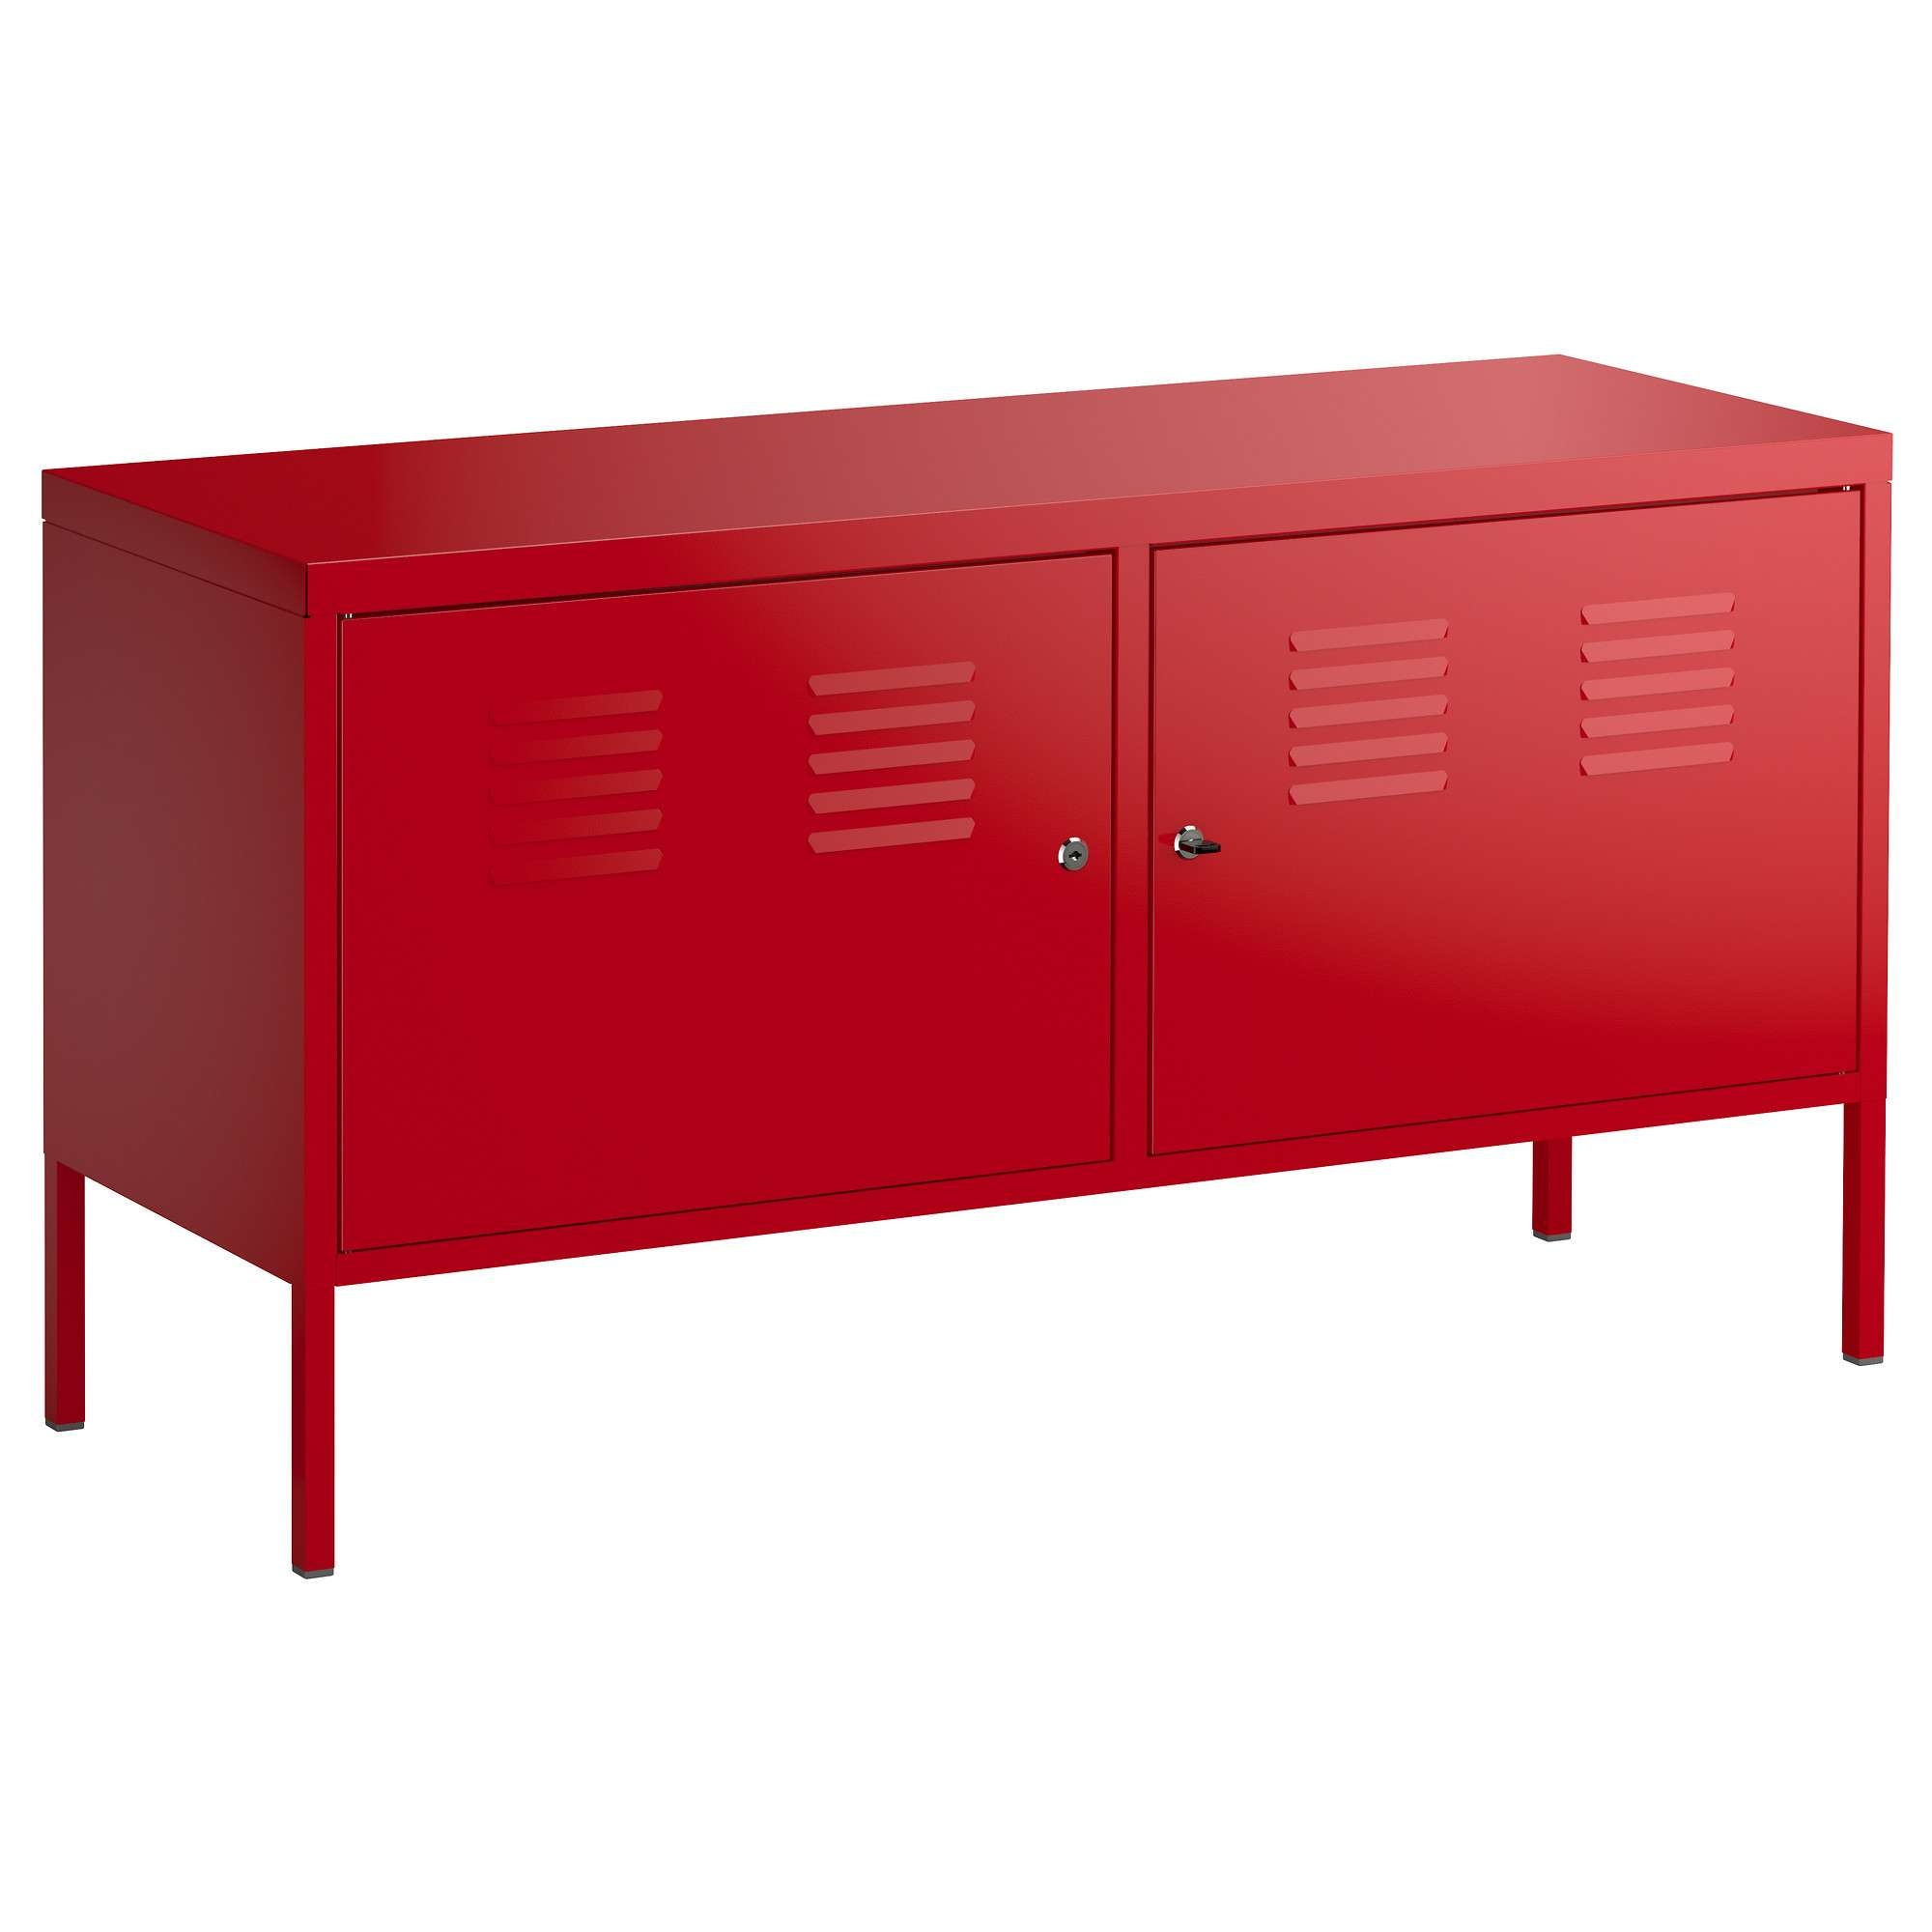 Ikea Ps Cabinet – Red – Ikea Pertaining To Red Tv Cabinets (Gallery 11 of 20)